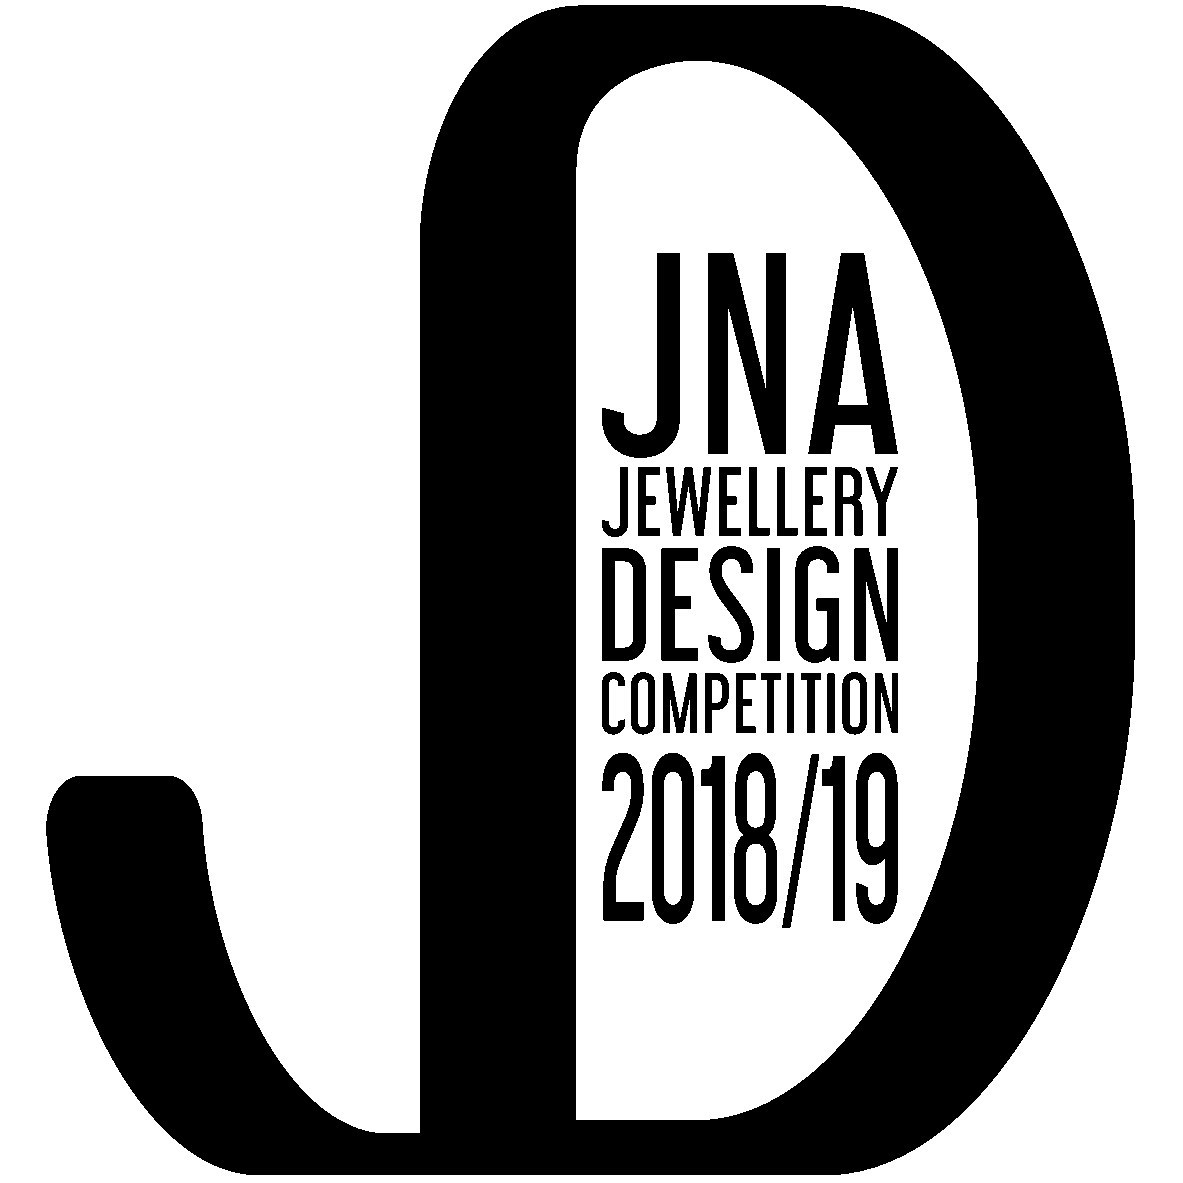 Finalists selected for JNA Jewellery Design Competition 2018/19